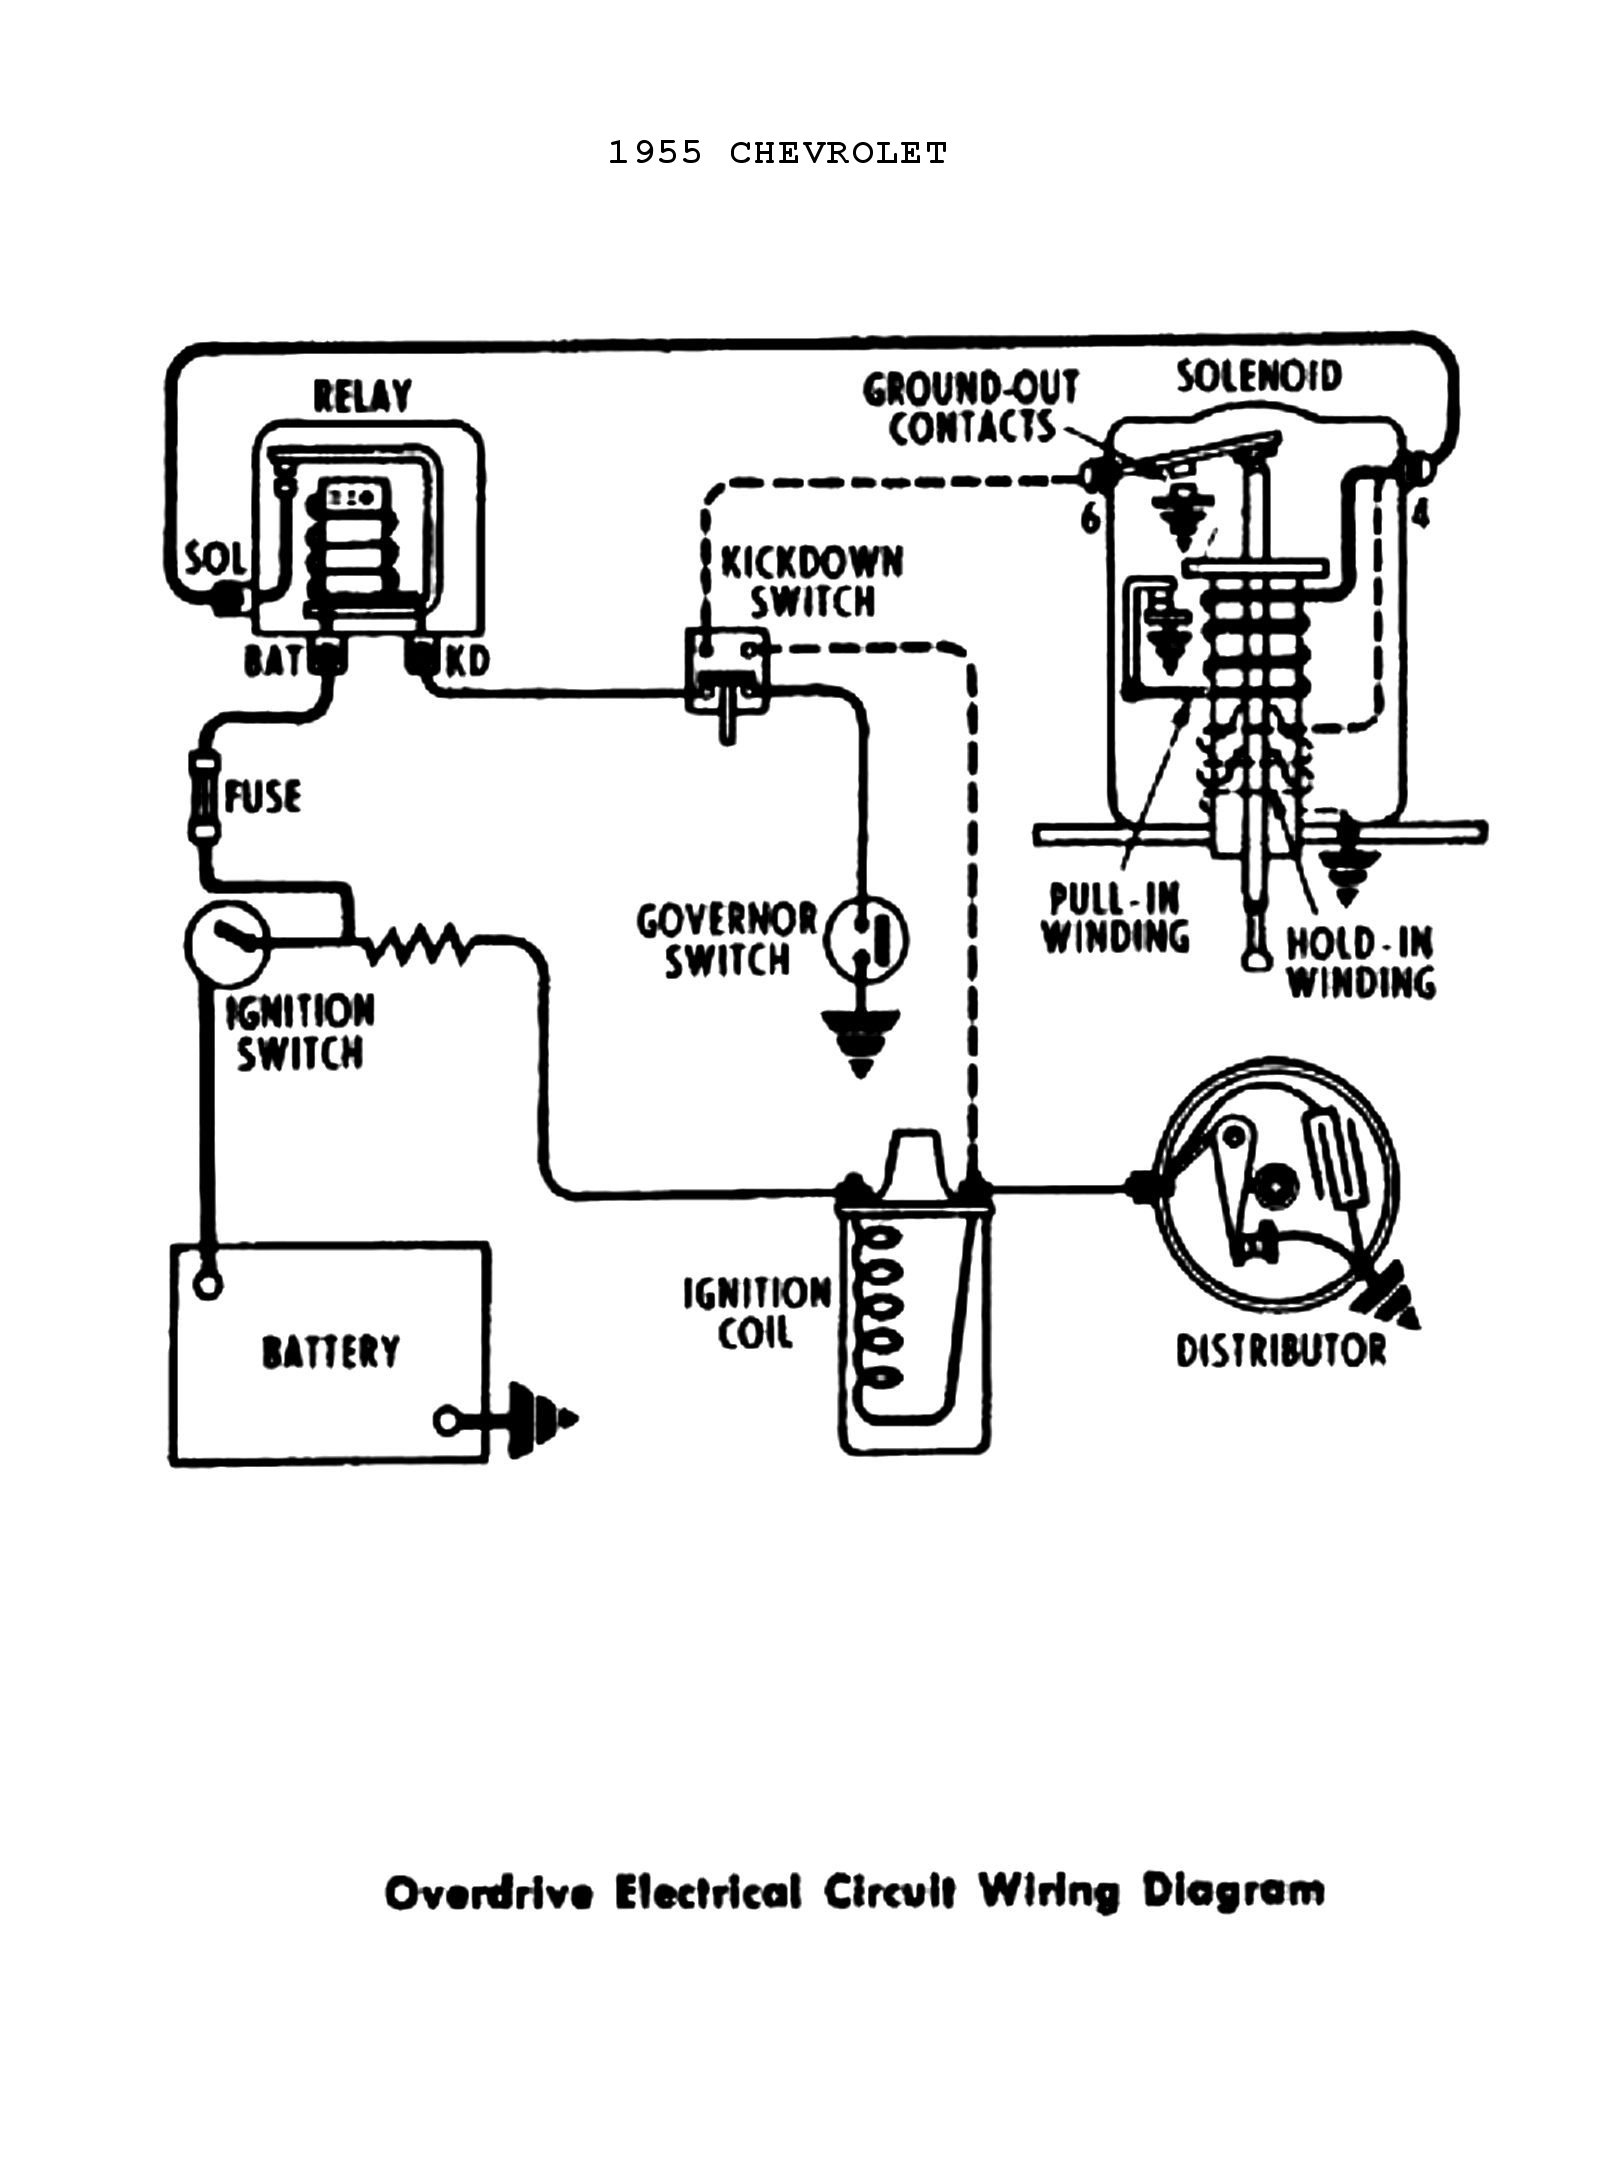 DIAGRAM] Small Body Hei Distributor Wiring Diagram FULL Version HD Quality Wiring  Diagram - 191458.ACCNET.FRProcess Flow Diagram Haccp - accnet.fr